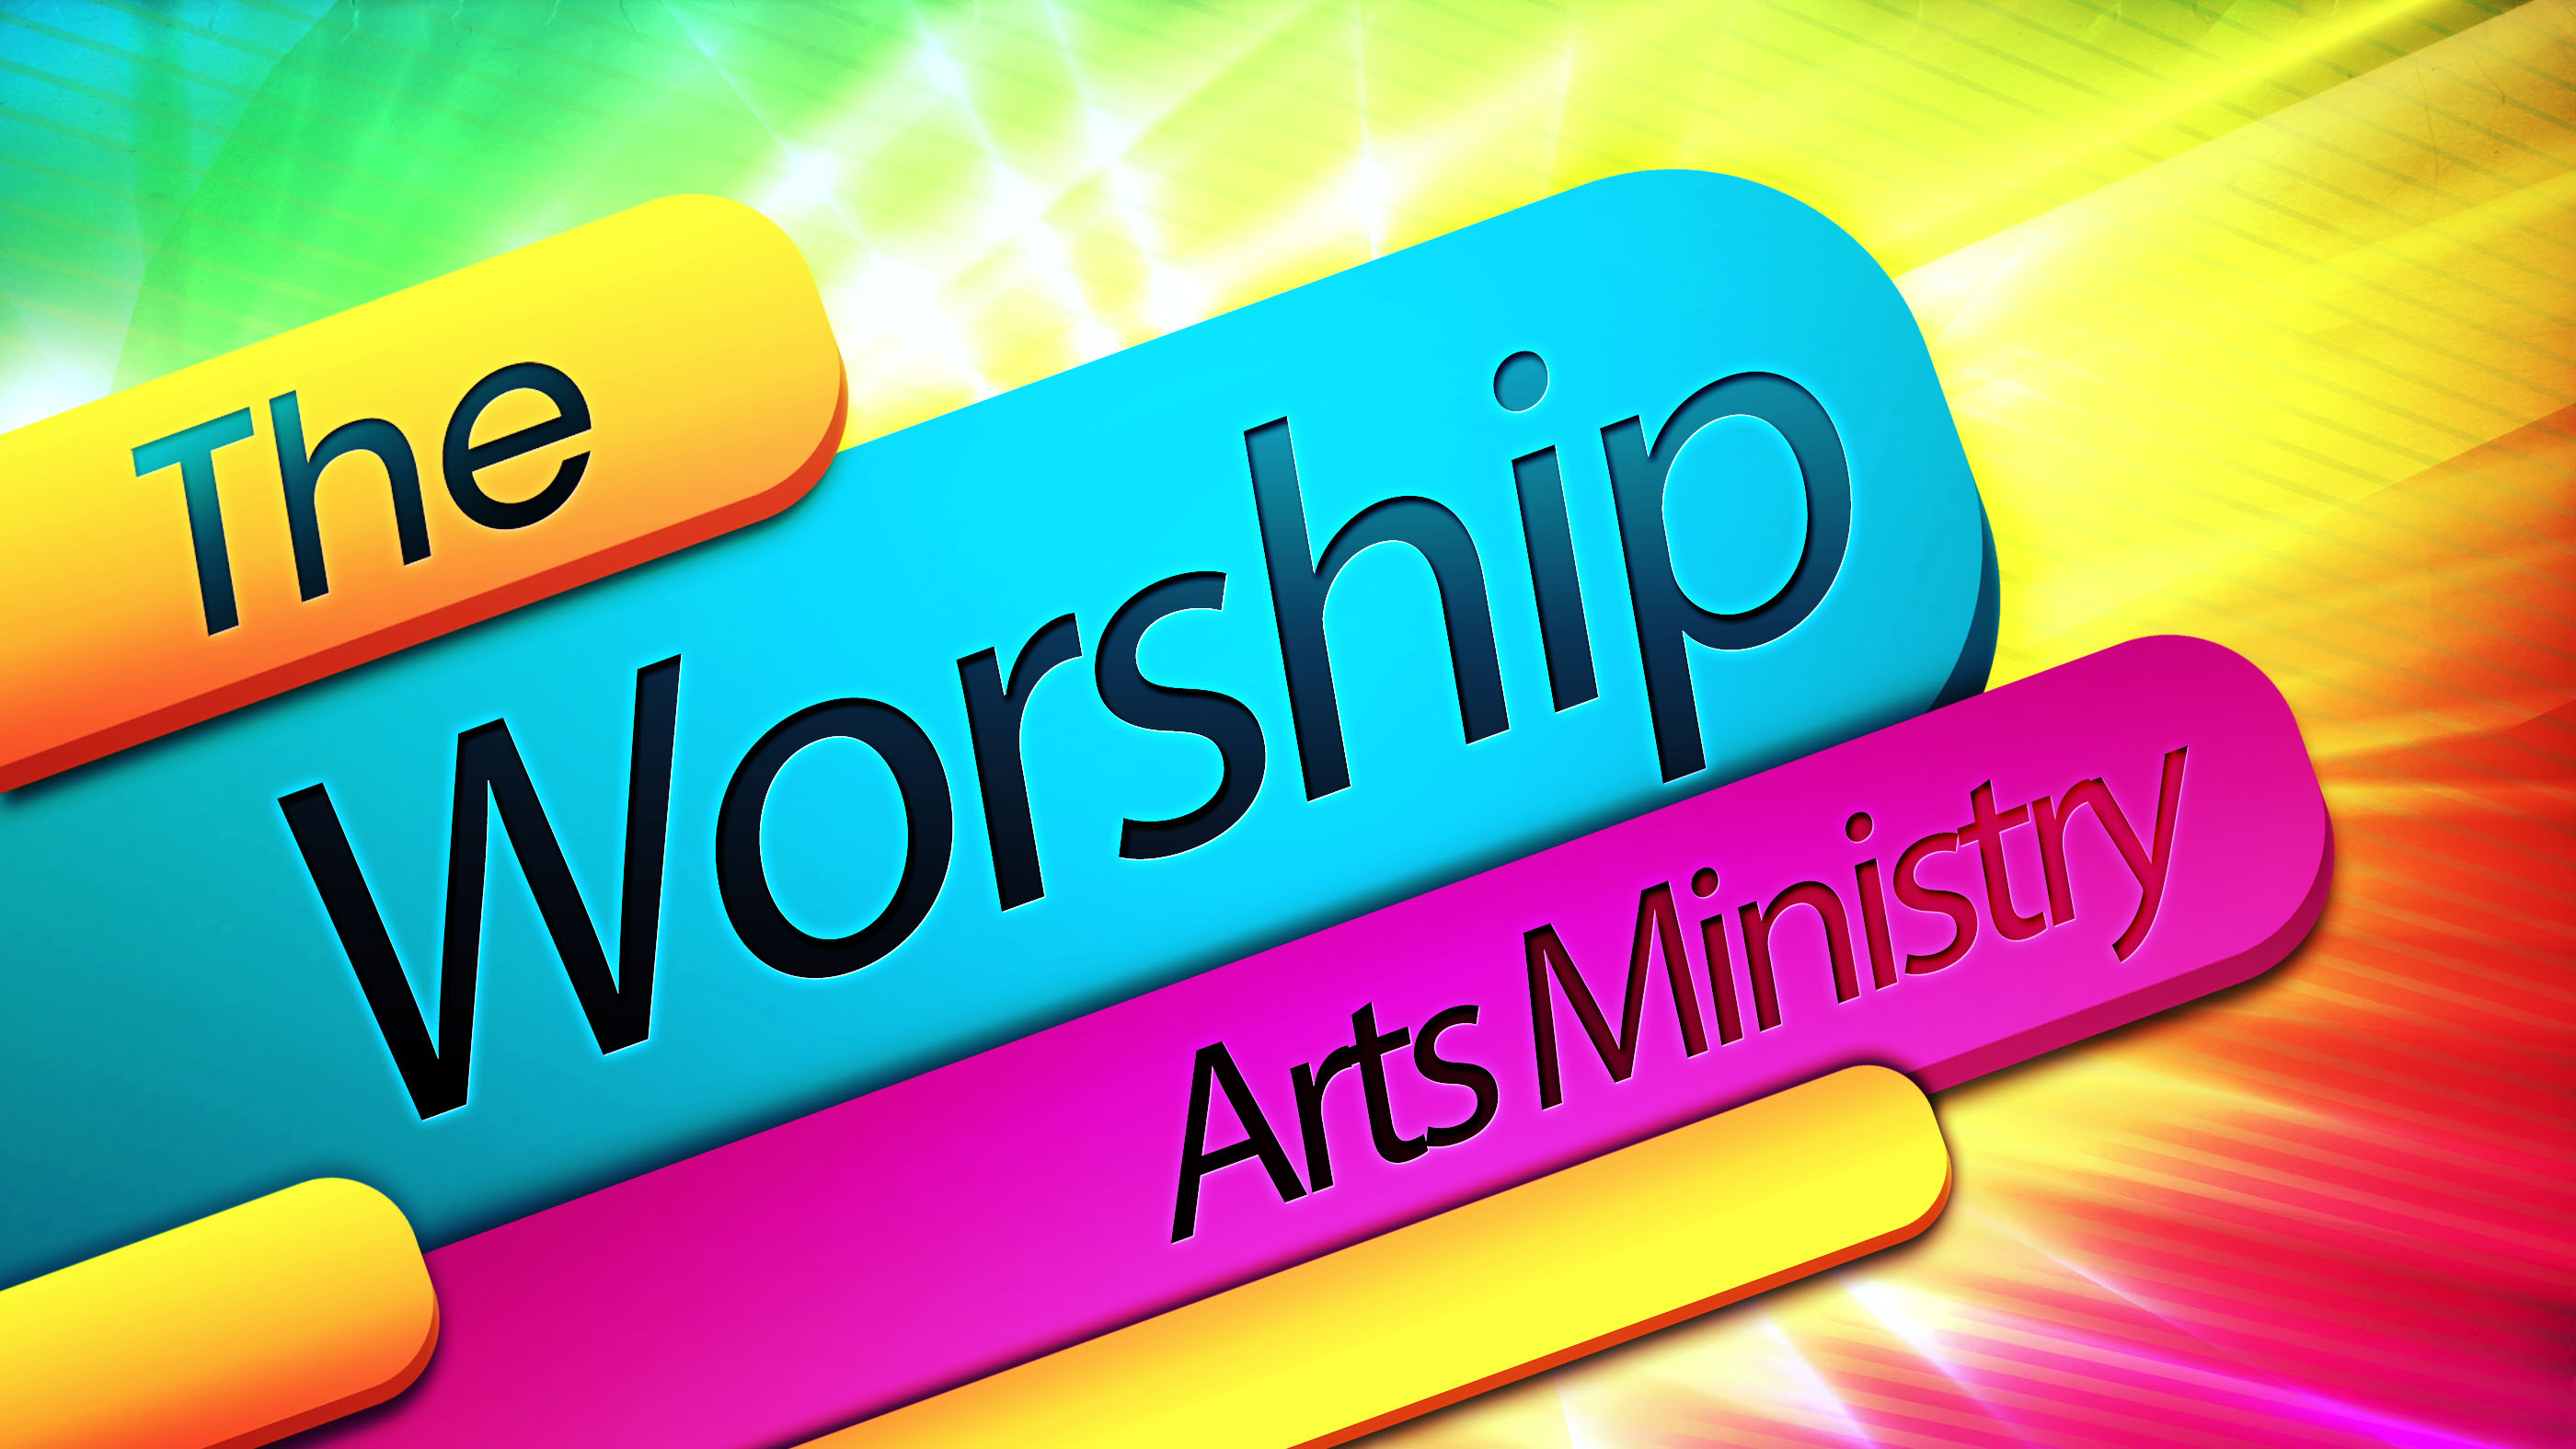 Evangelism through the Arts Ministry